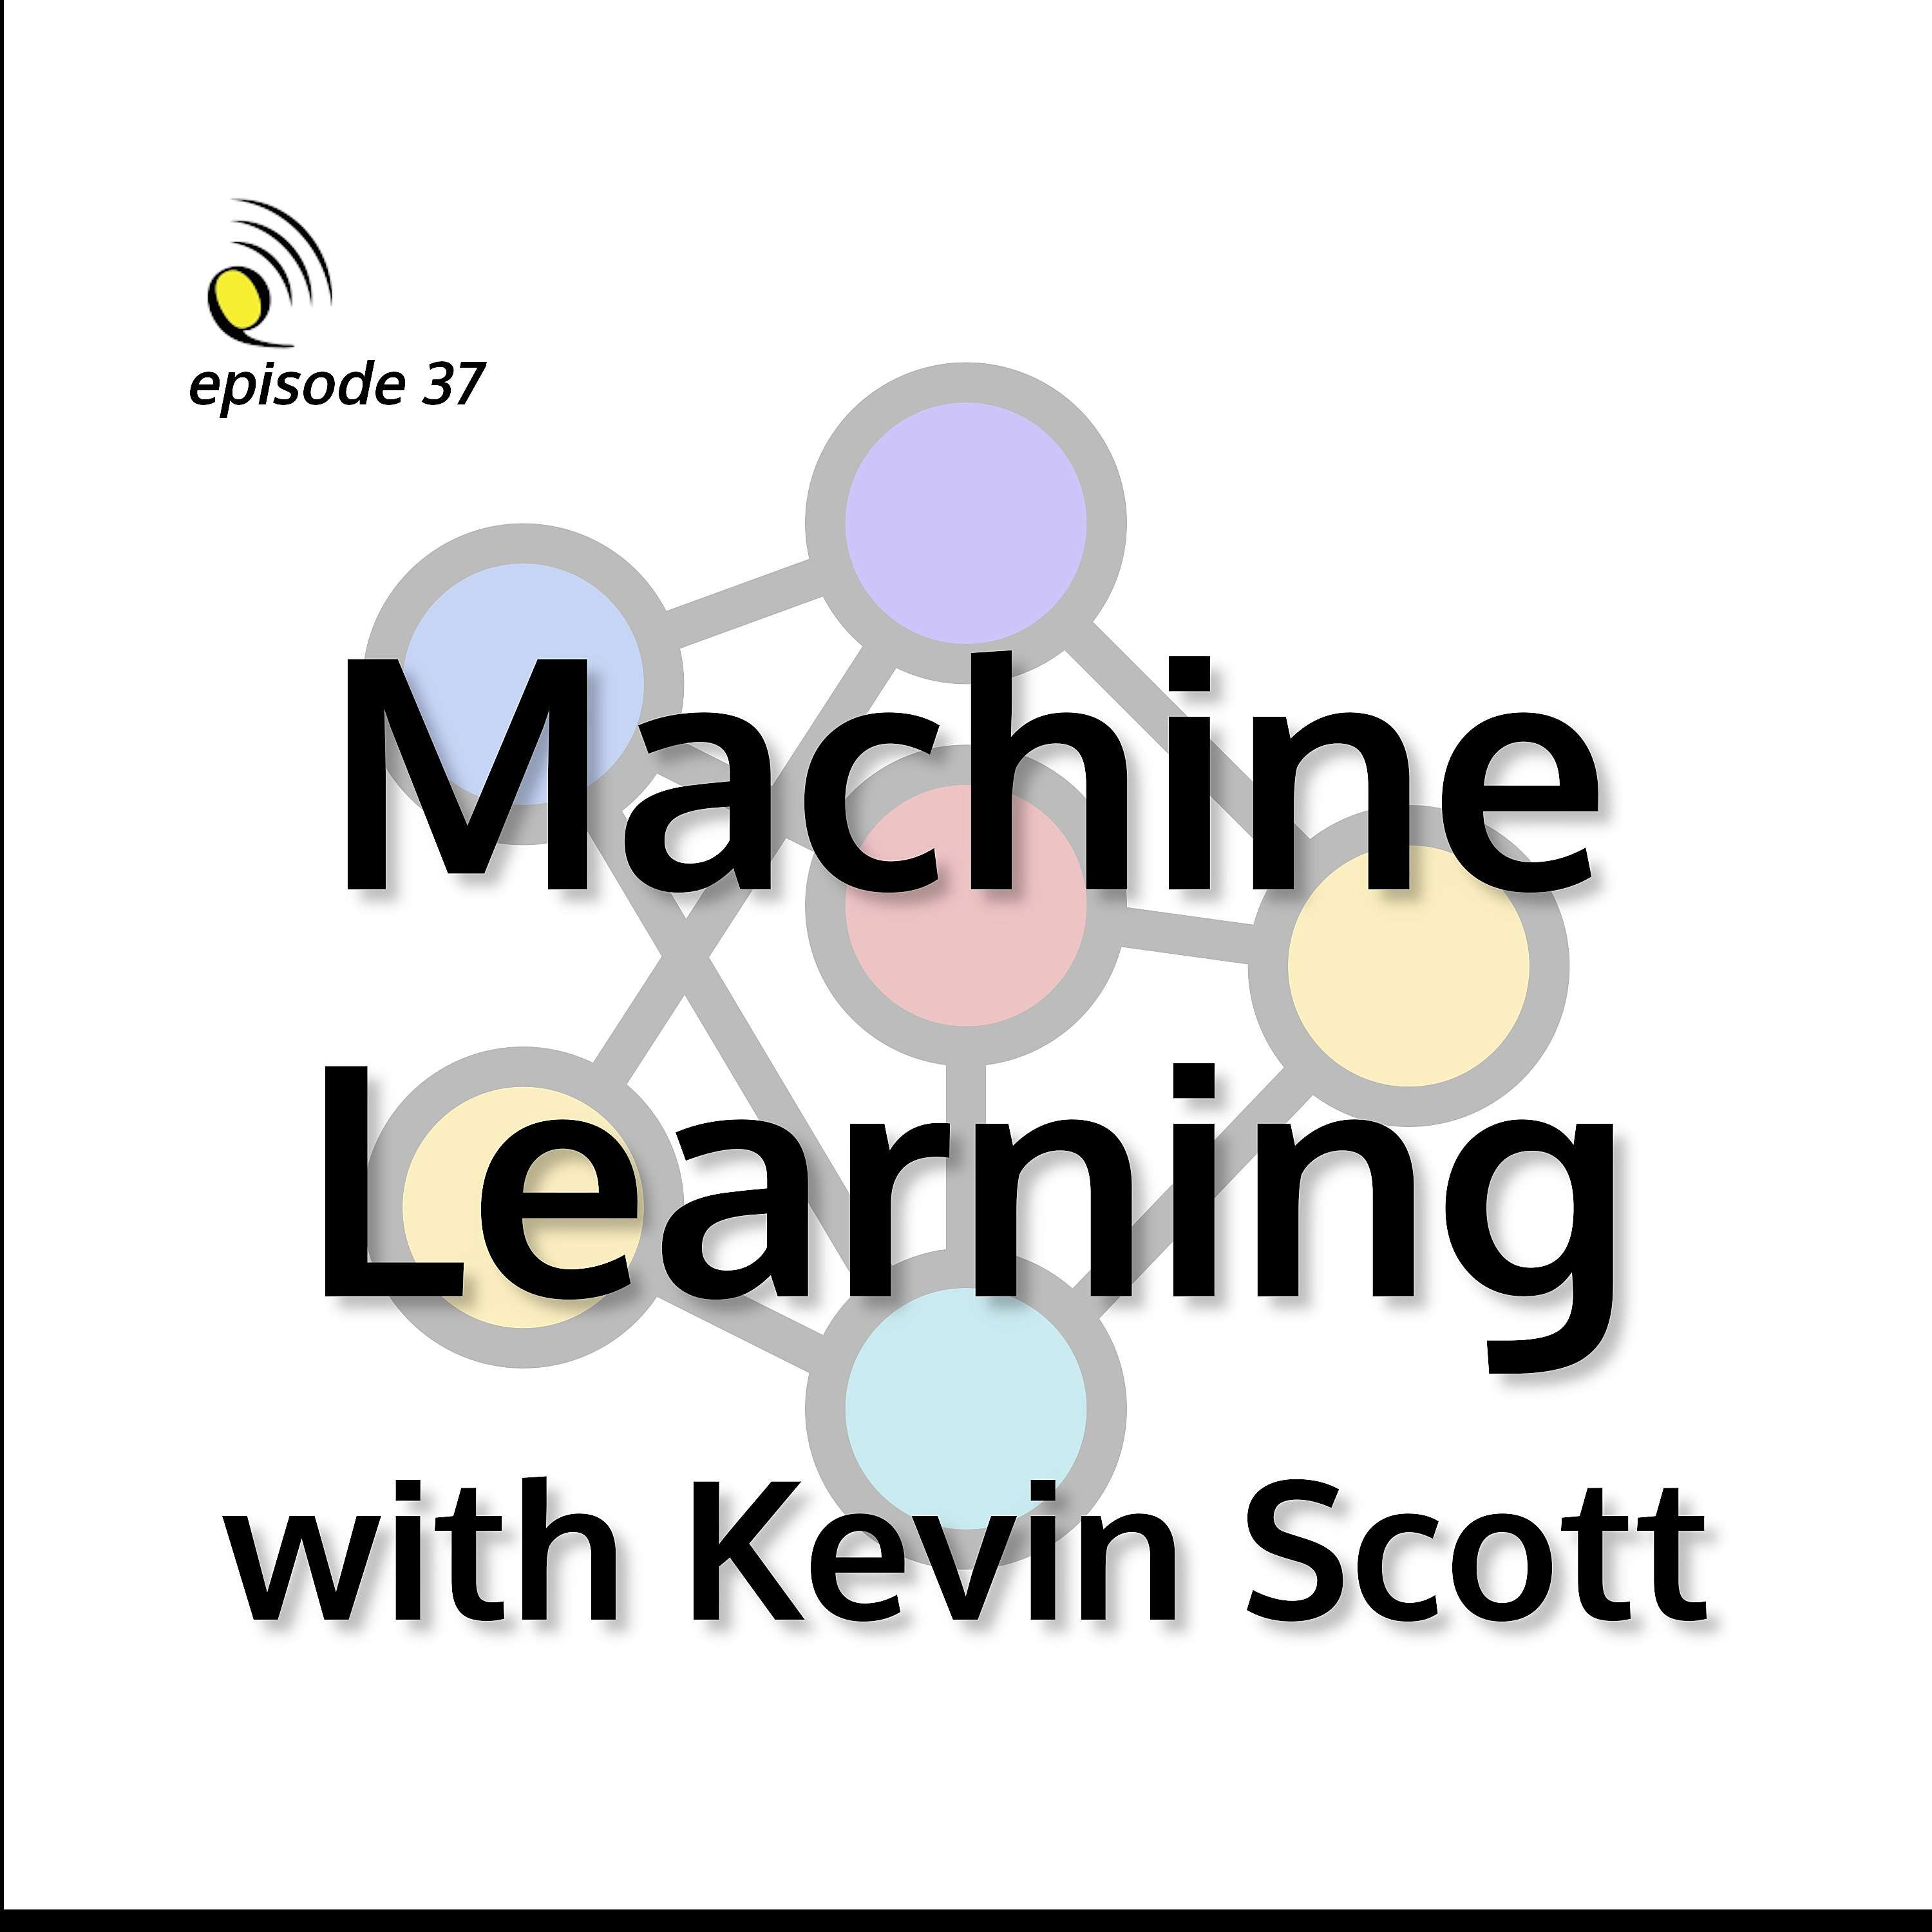 Machine Learning with Kevin Scott